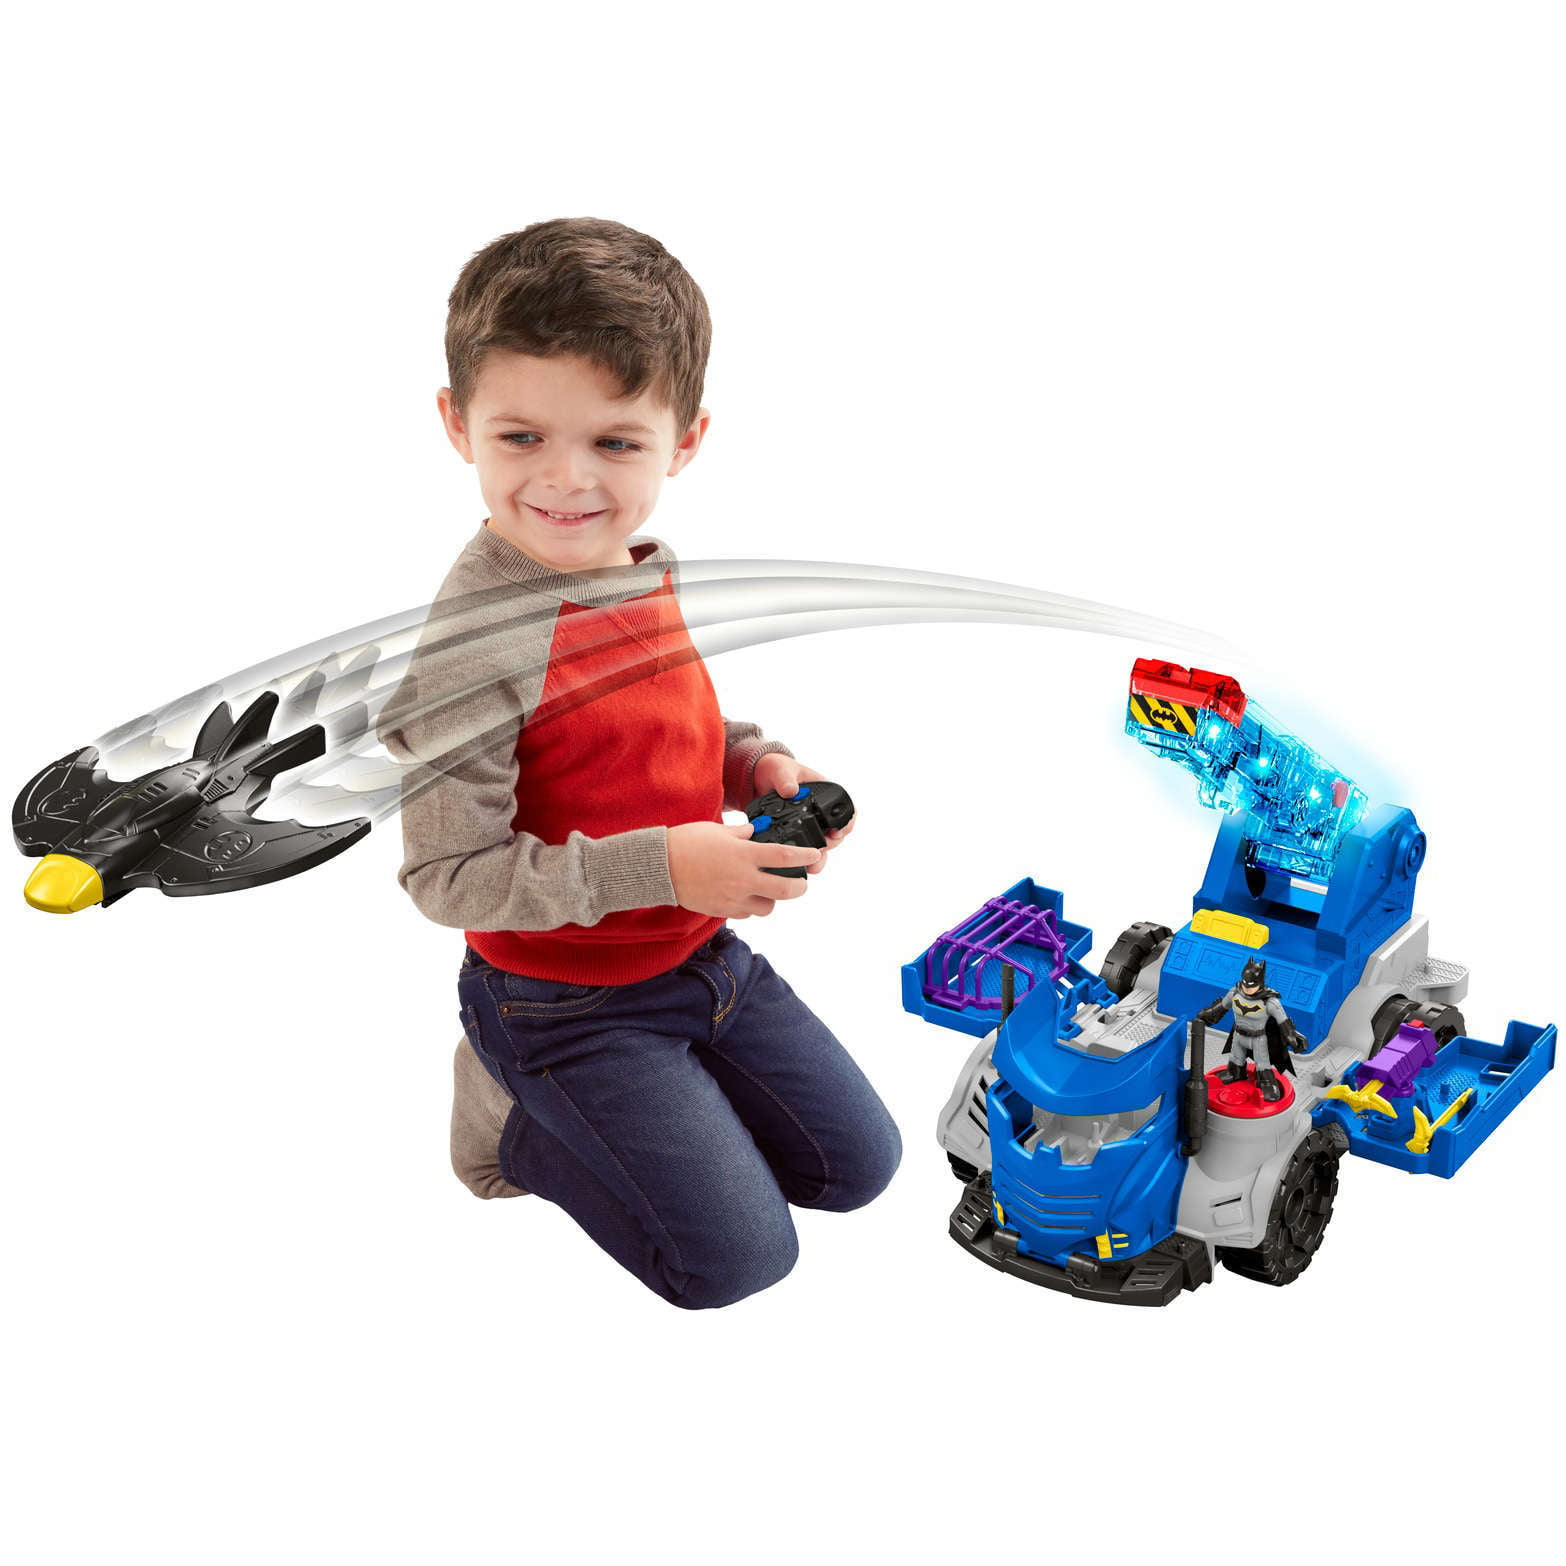 Fisher-Price Imaginext DC Super Friends RC Mobile Command Center